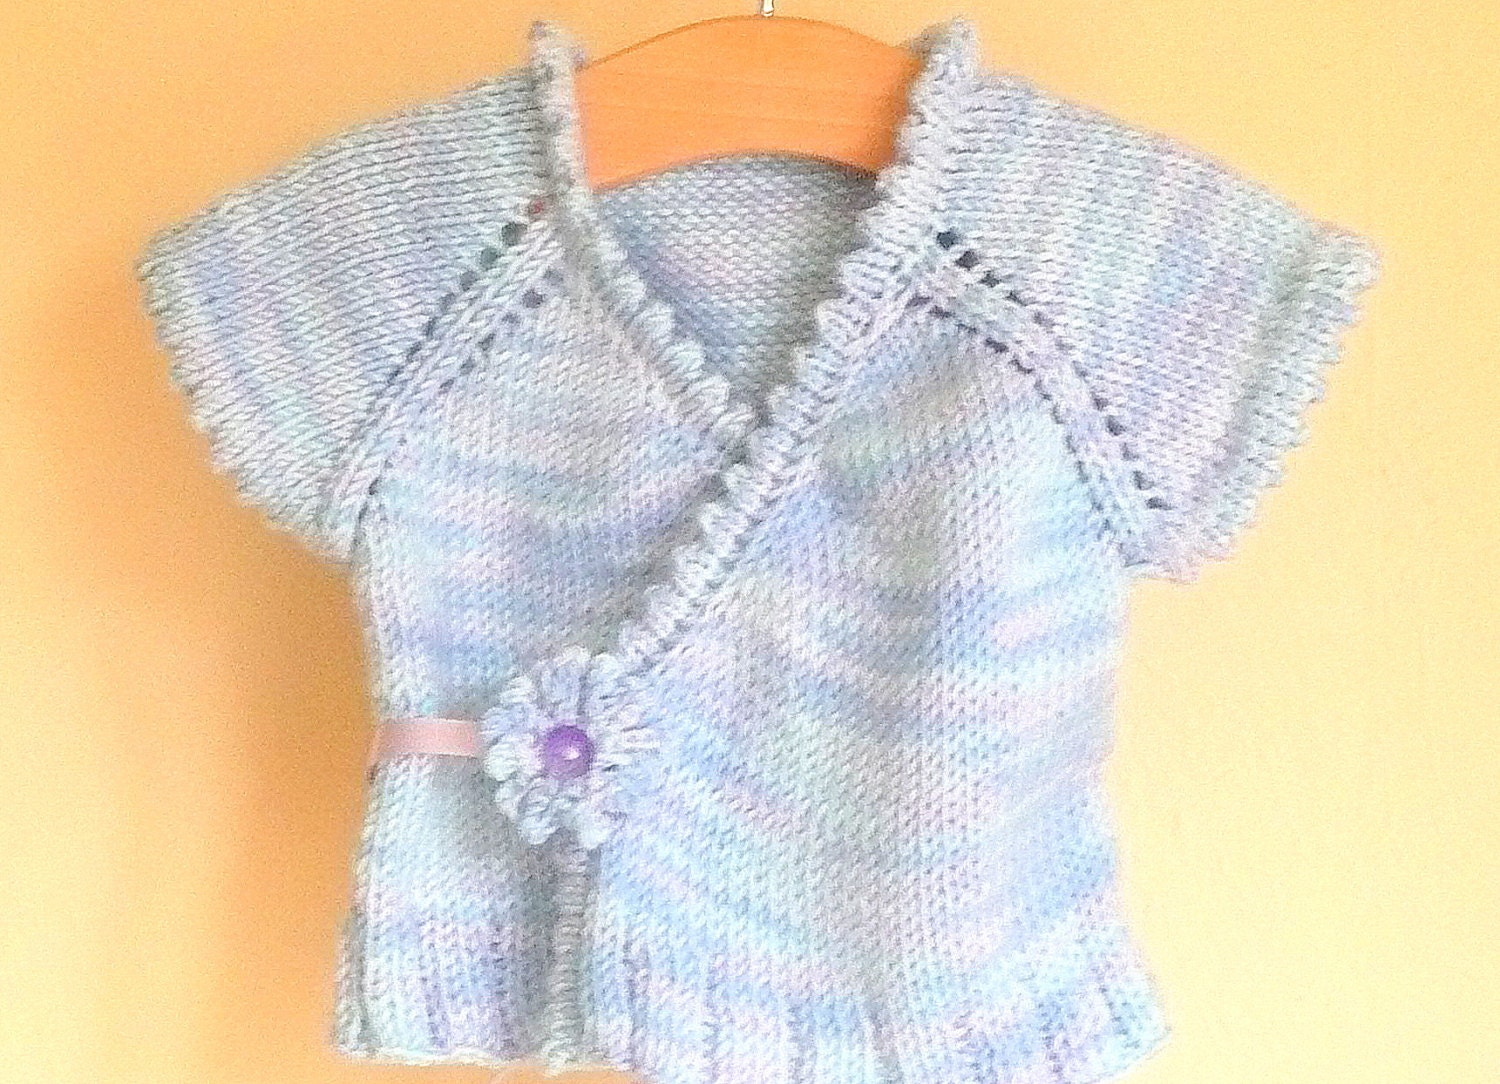 Knitting Pattern Crossover Top Down Cardigan Vest by ceradka